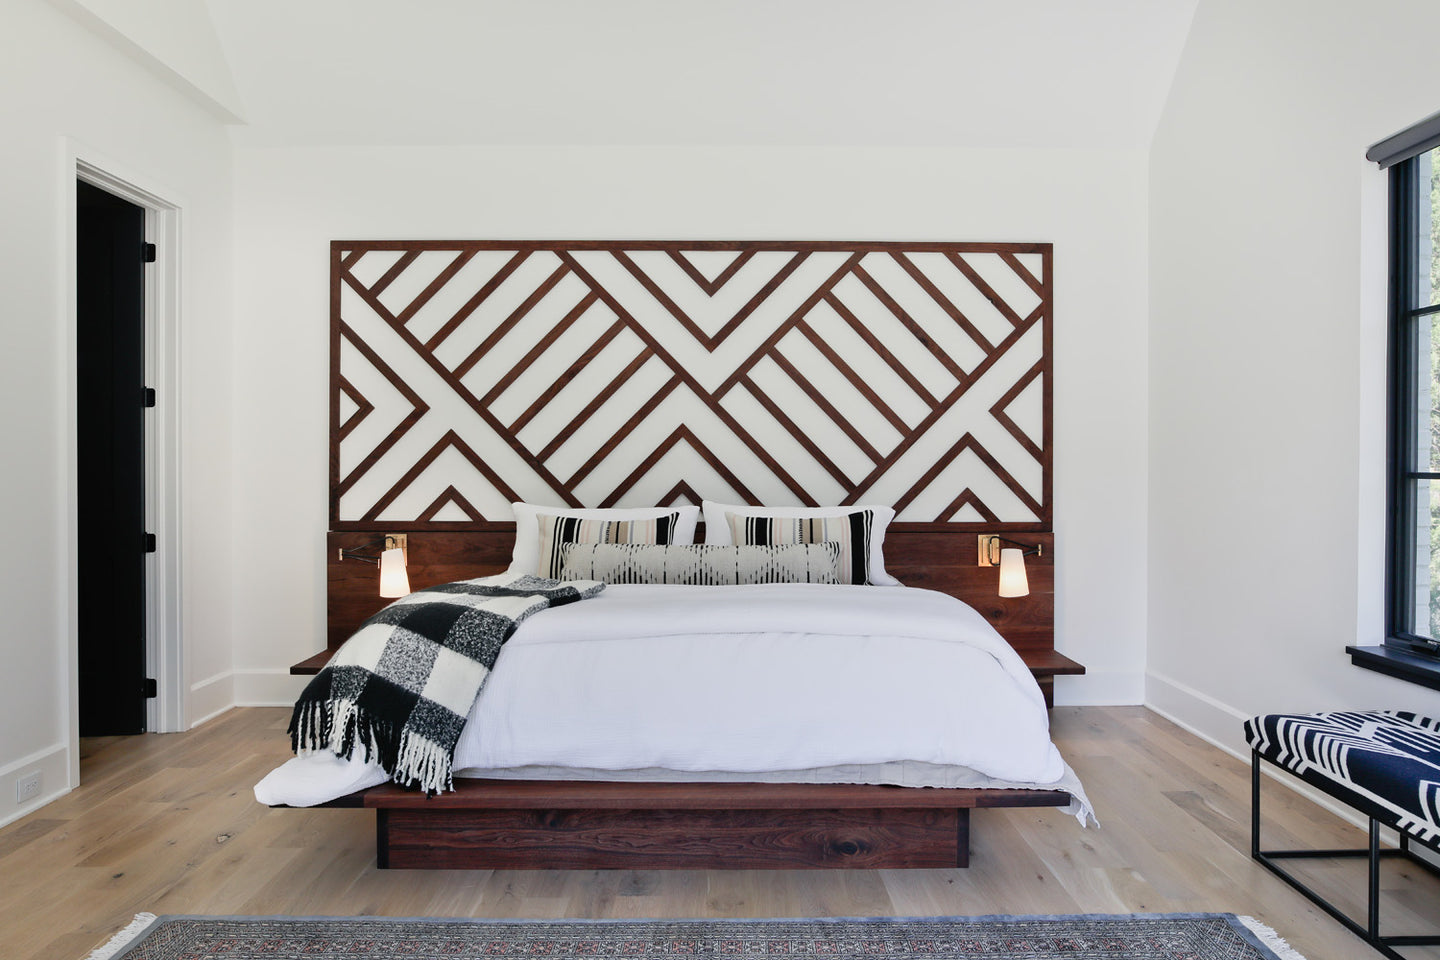 custom bed, platform bed, modern furniture, walnut bed, bedroom inspiration, headboard